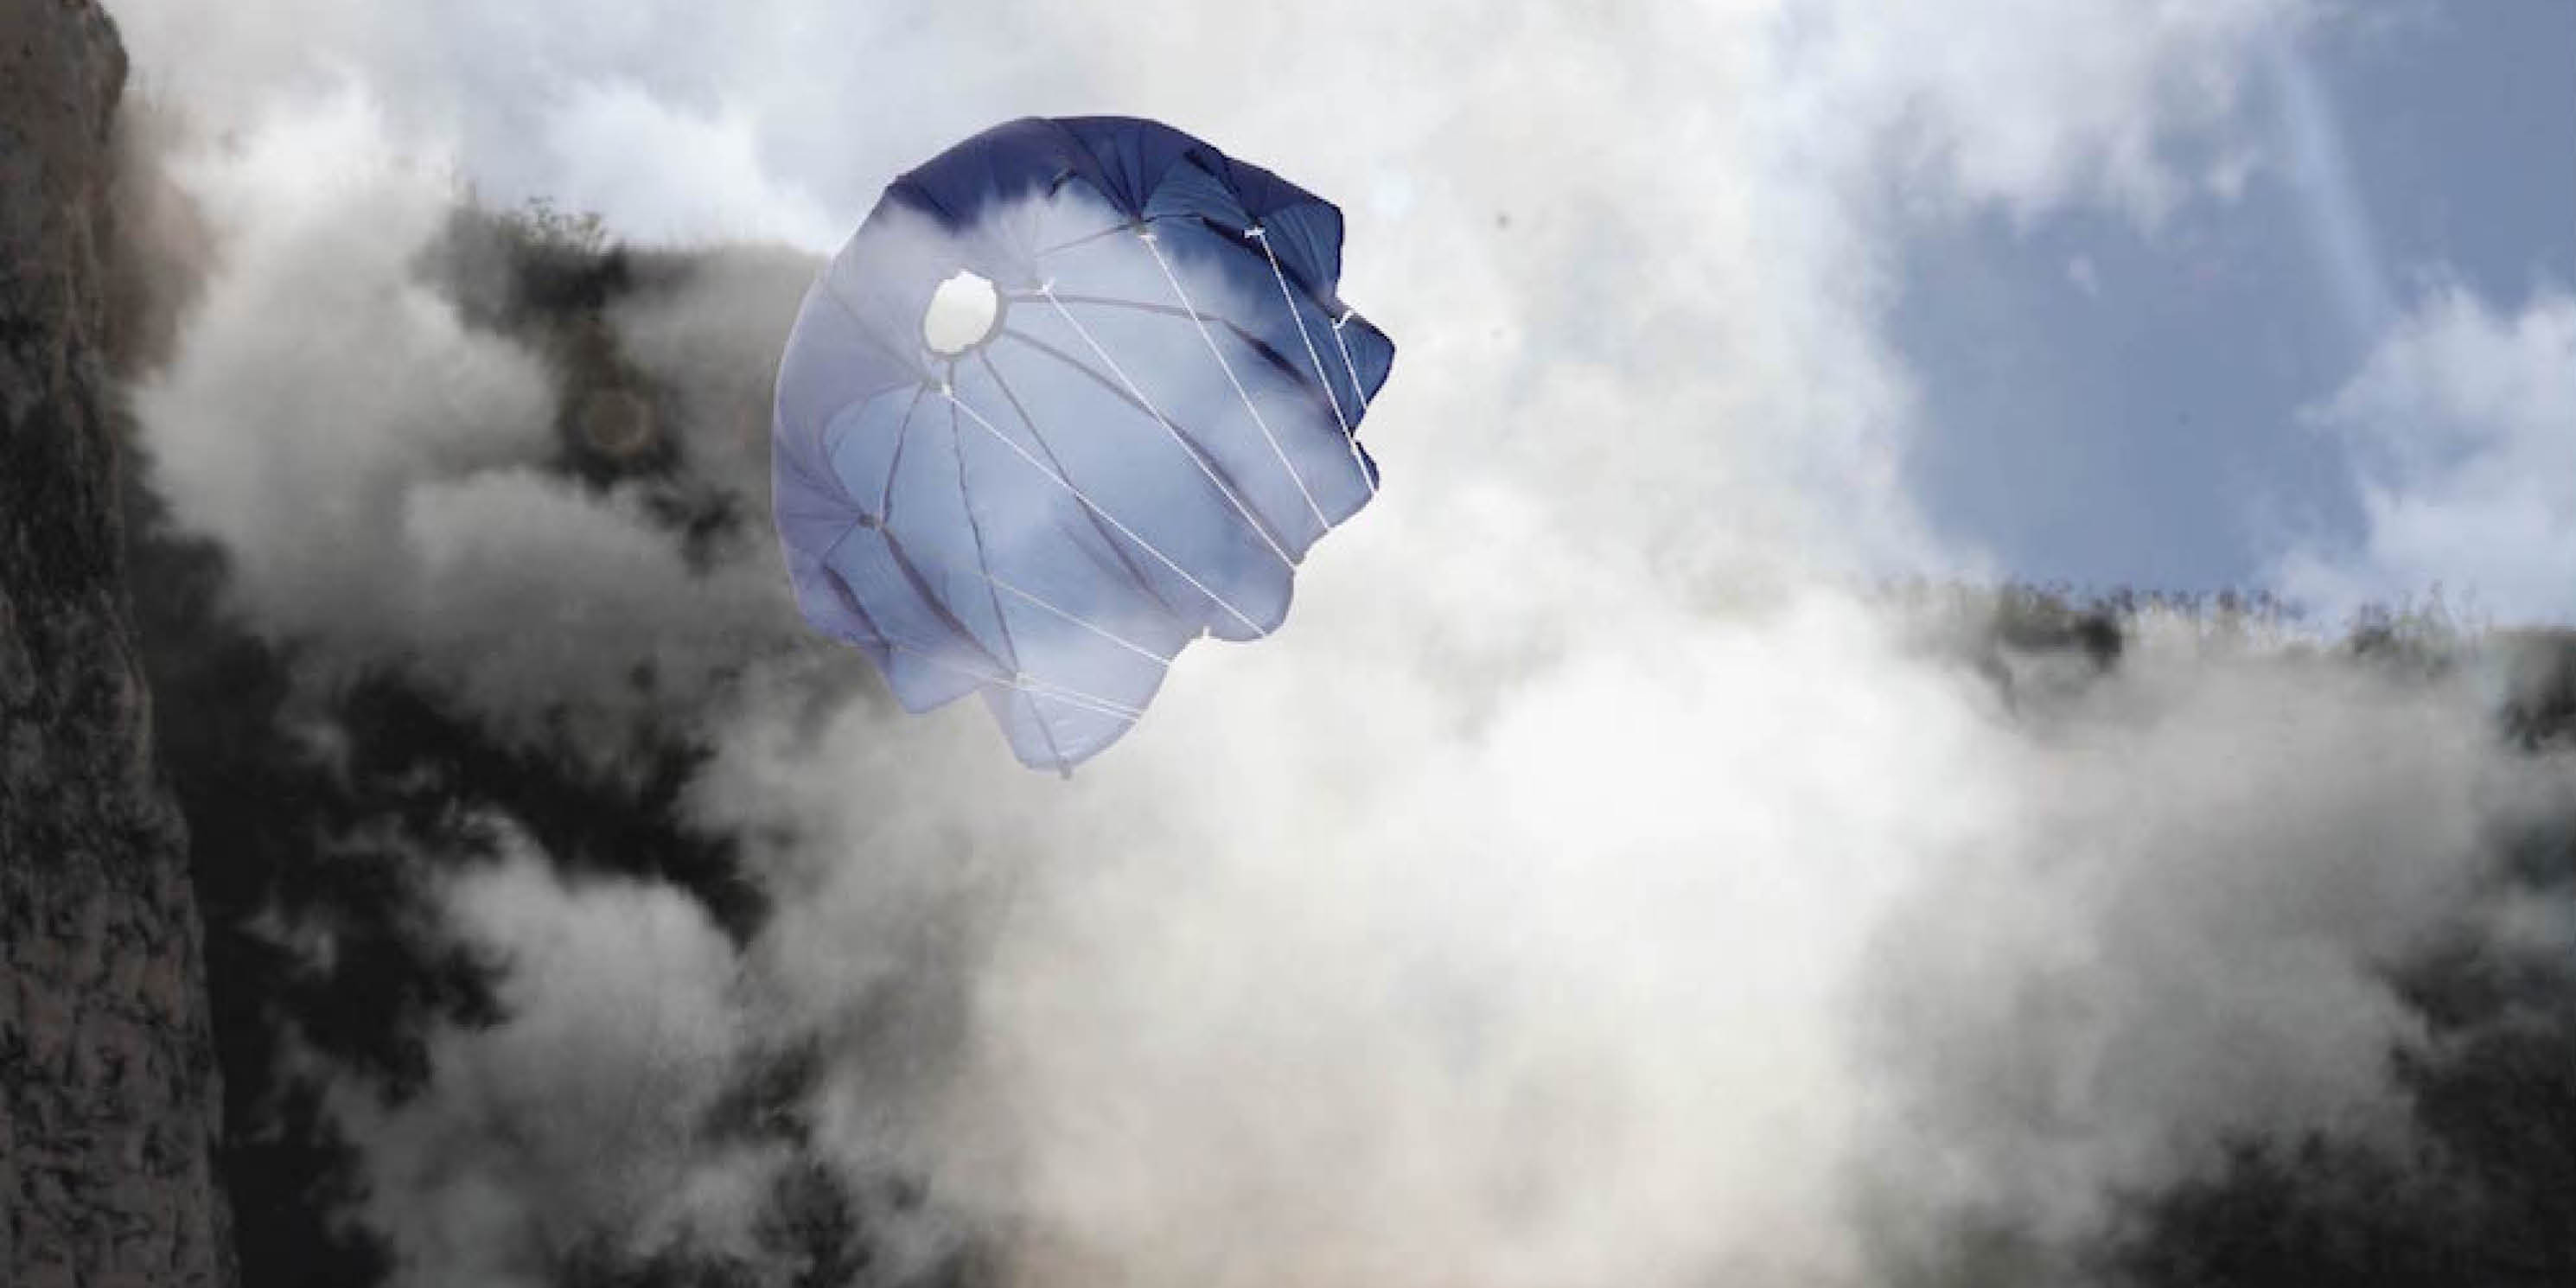 a parachute surrounded by clouds